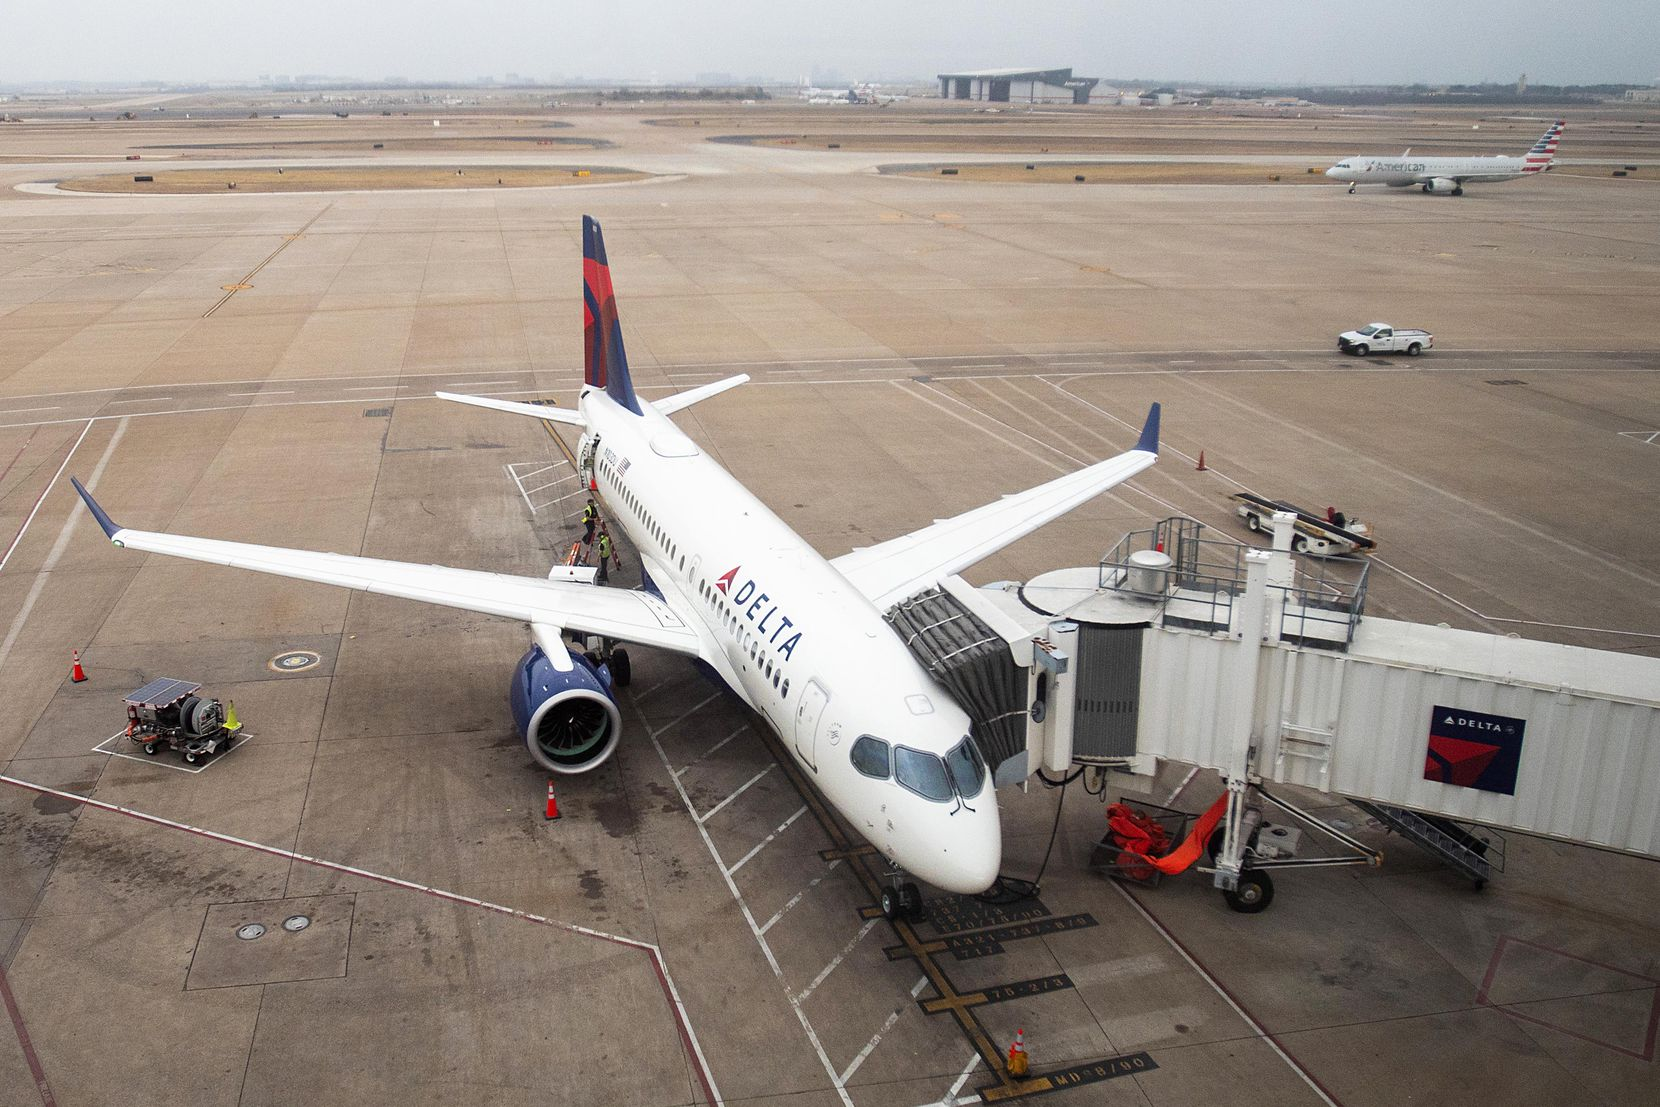 Delta's new Airbus A220-100 airplane sits parked at gate E15 of Terminal E at DFW Airport on Wednesday, Feb. 6, 2019.